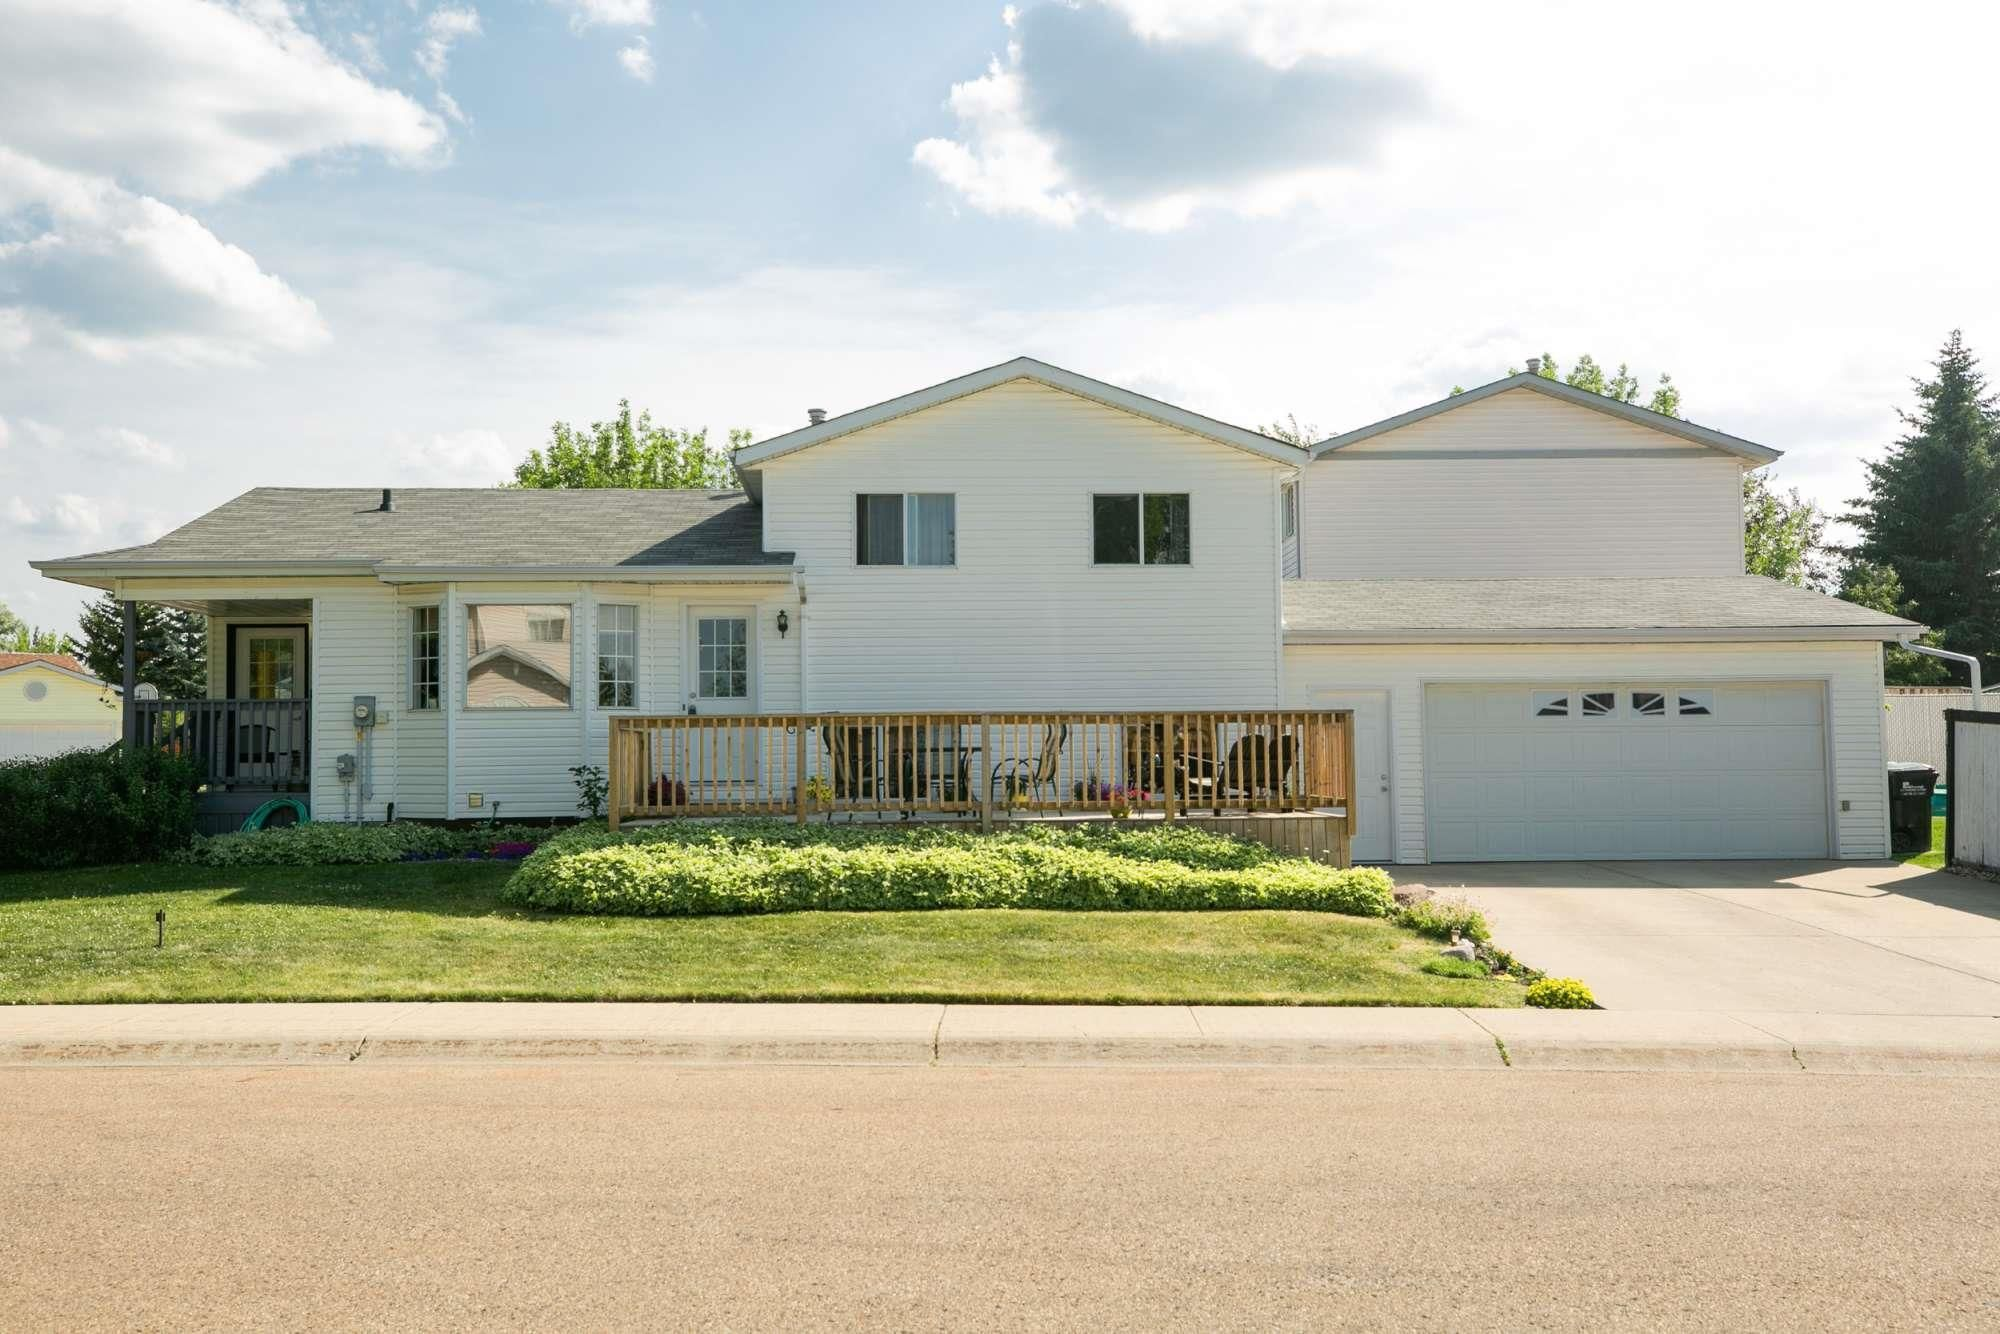 Main Photo: 57 DAVY Crescent: Sherwood Park House for sale : MLS®# E4252795